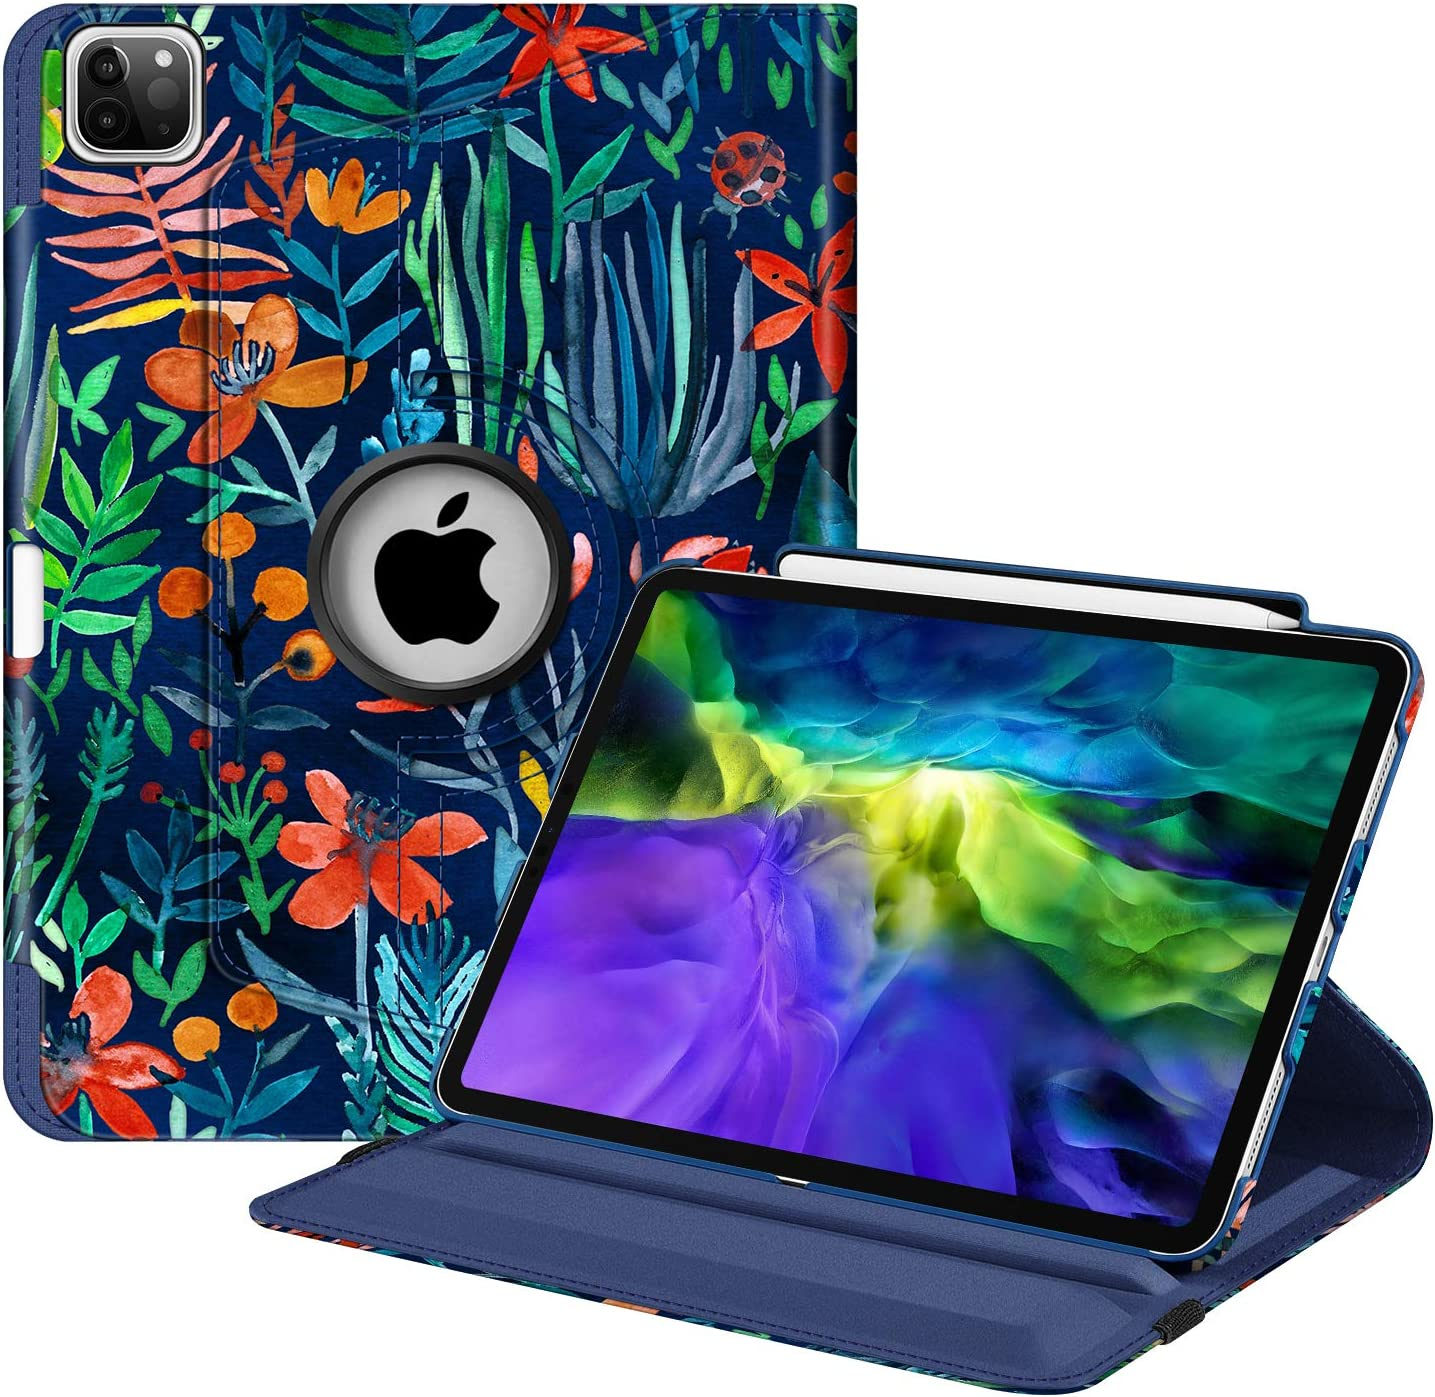 "Fintie Case with Built-in Pencil Holder for iPad Pro 11"" 2020 & 2018 [Support 2nd Gen Pencil Charging Mode] - 360 Degree Rotating Stand Protective Cover with Auto Sleep/Wake, Jungle Night"